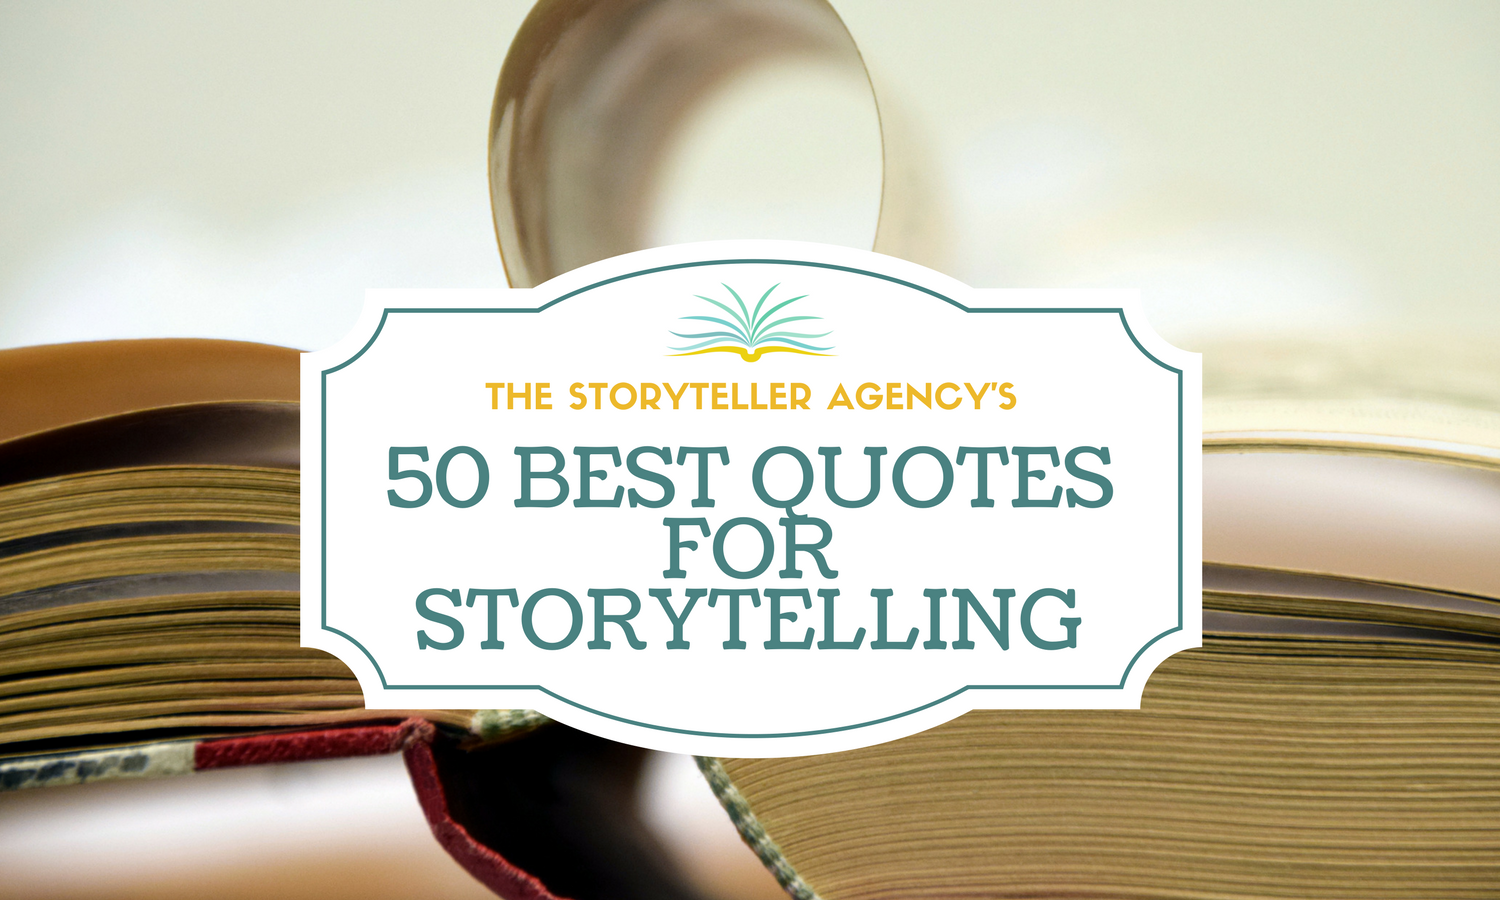 Image of: Poster Facegarage 50 Best Quotes For Storytelling The Storyteller Agency